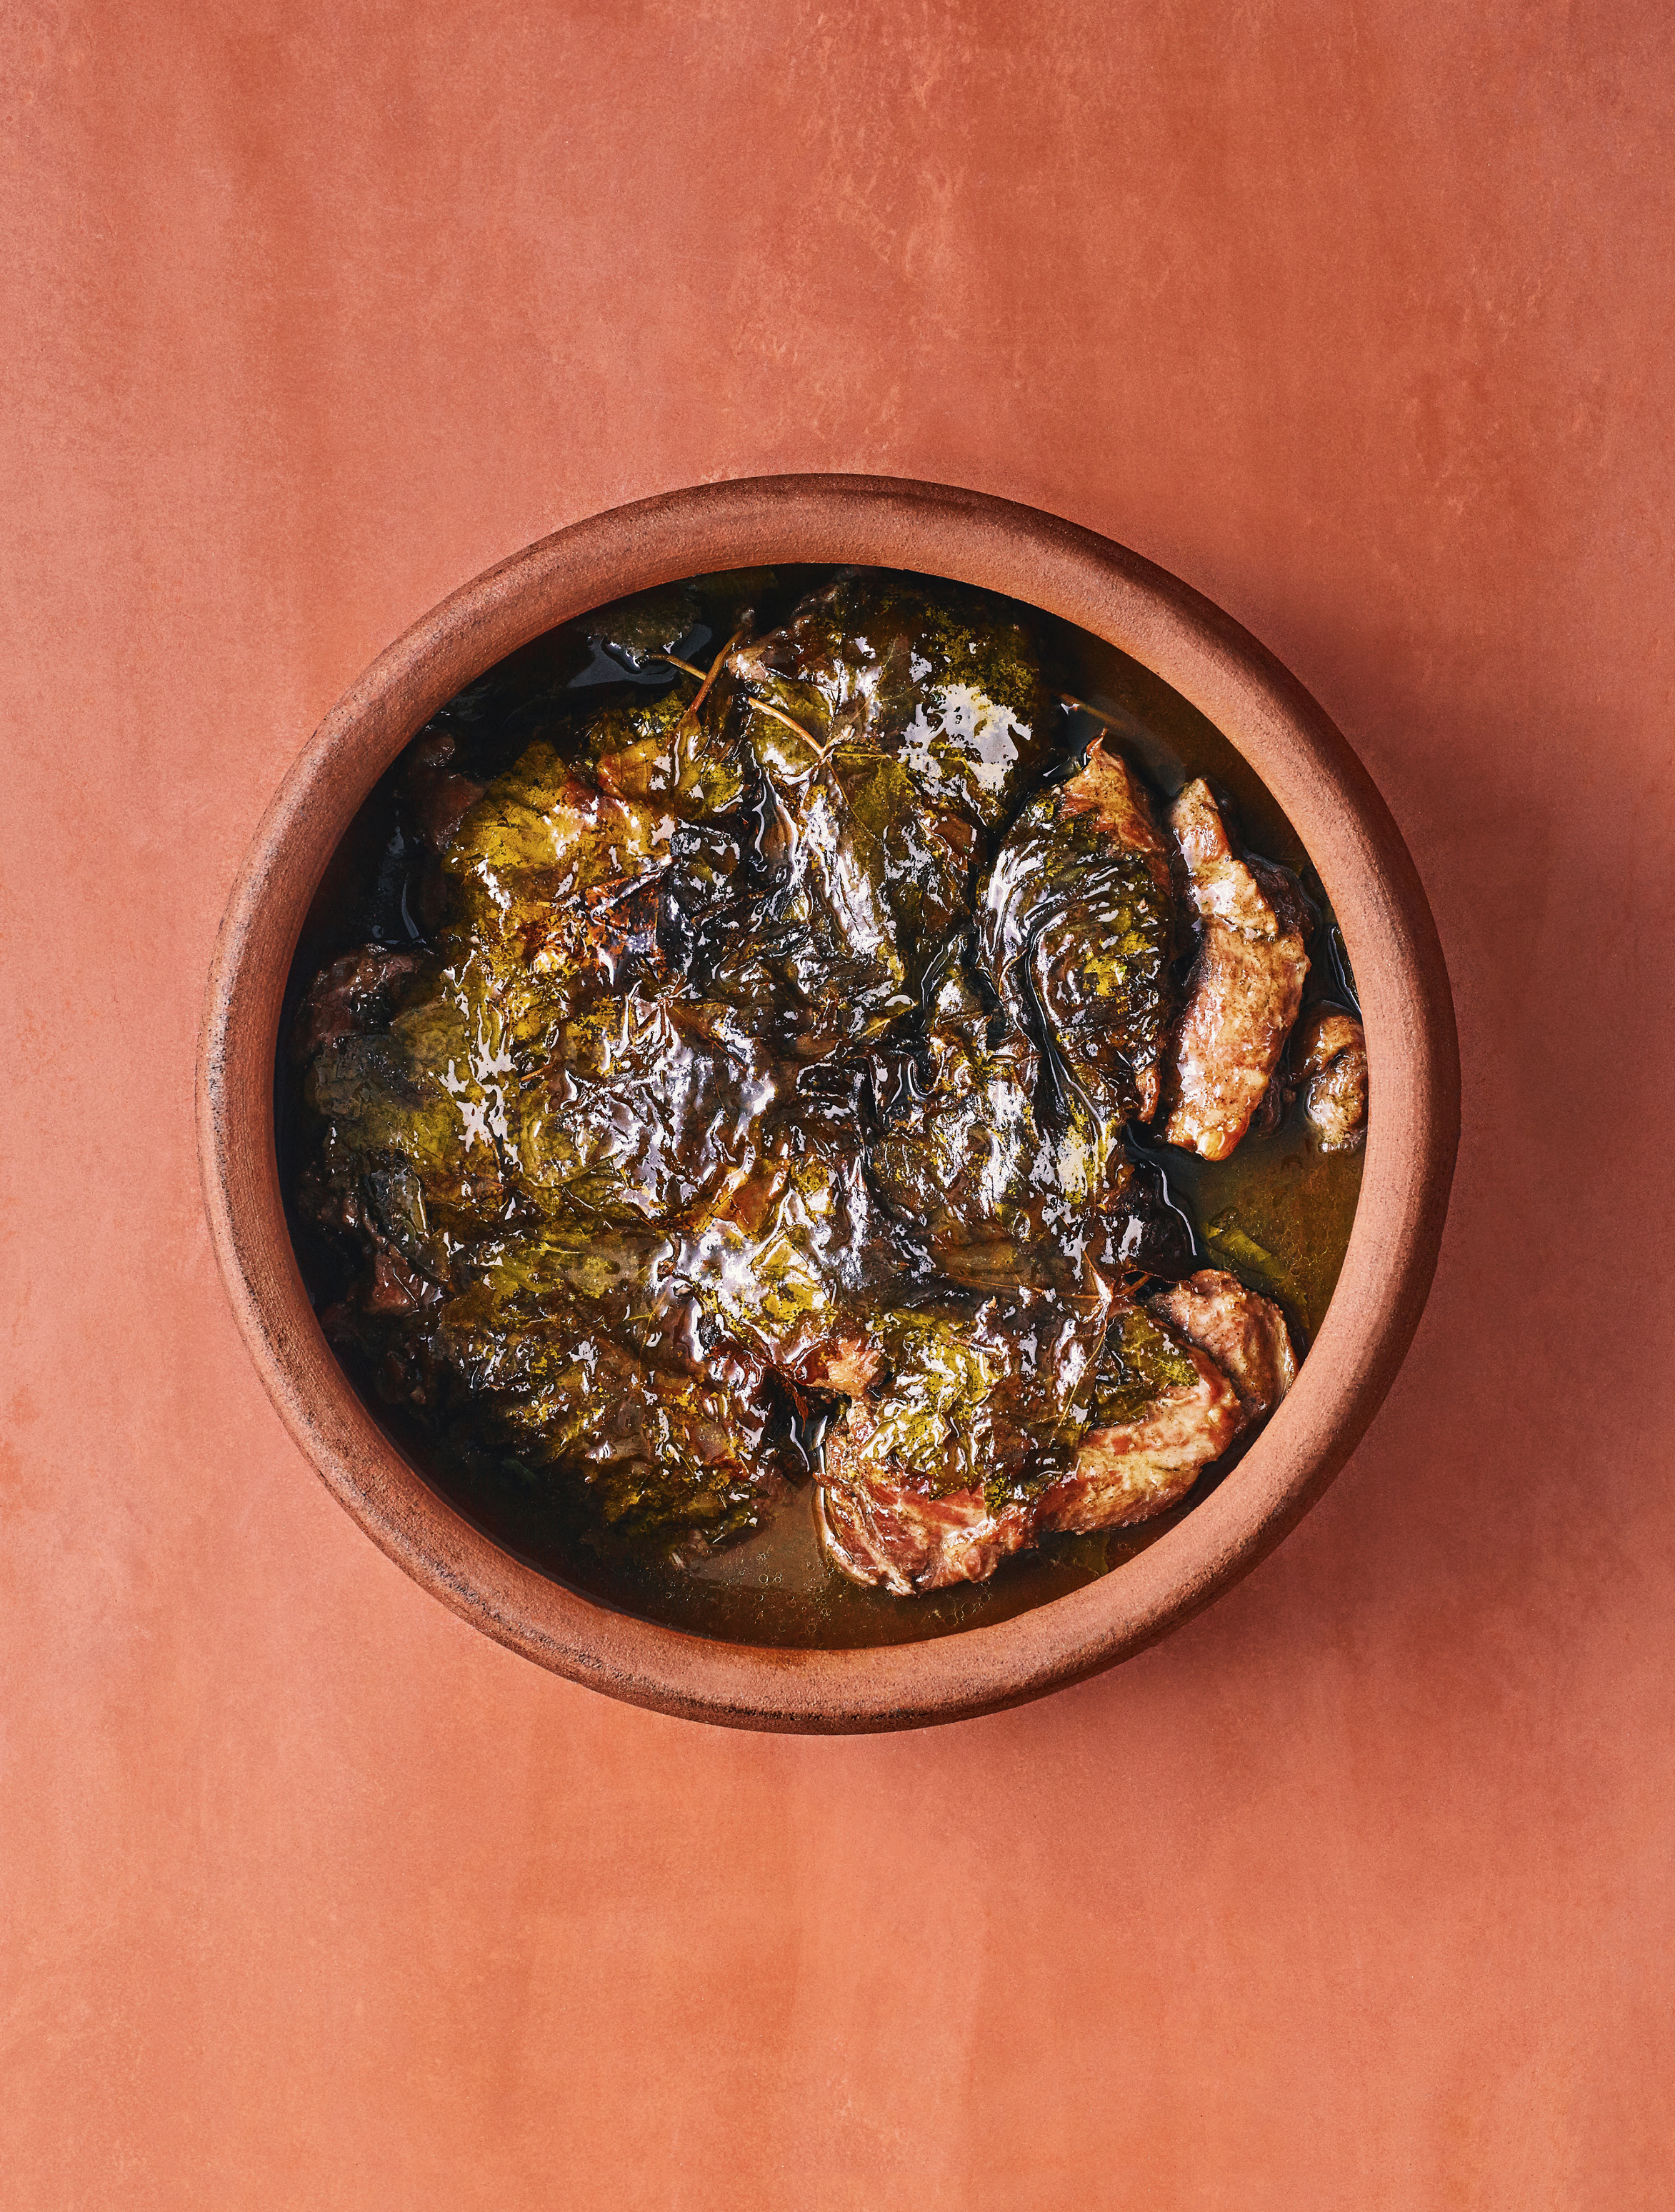 Grape leaves and braised short ribs